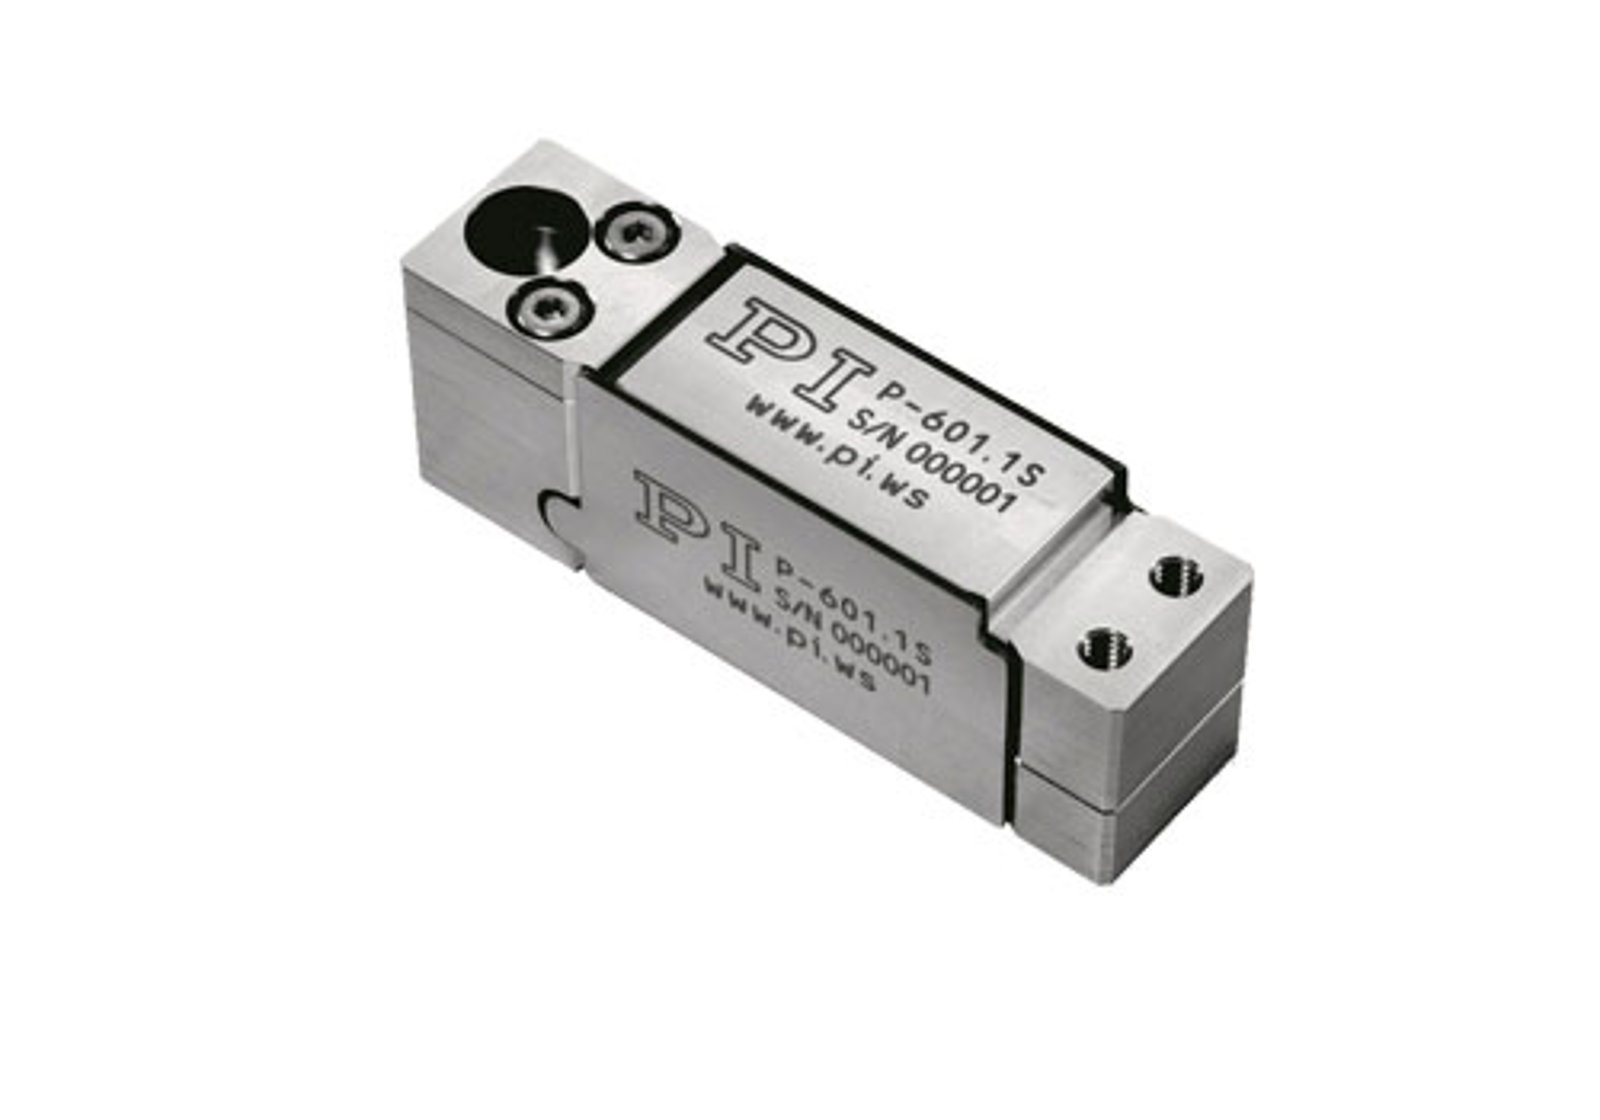 All Piezo Motors are NOT Created Equal: The piezoelectric